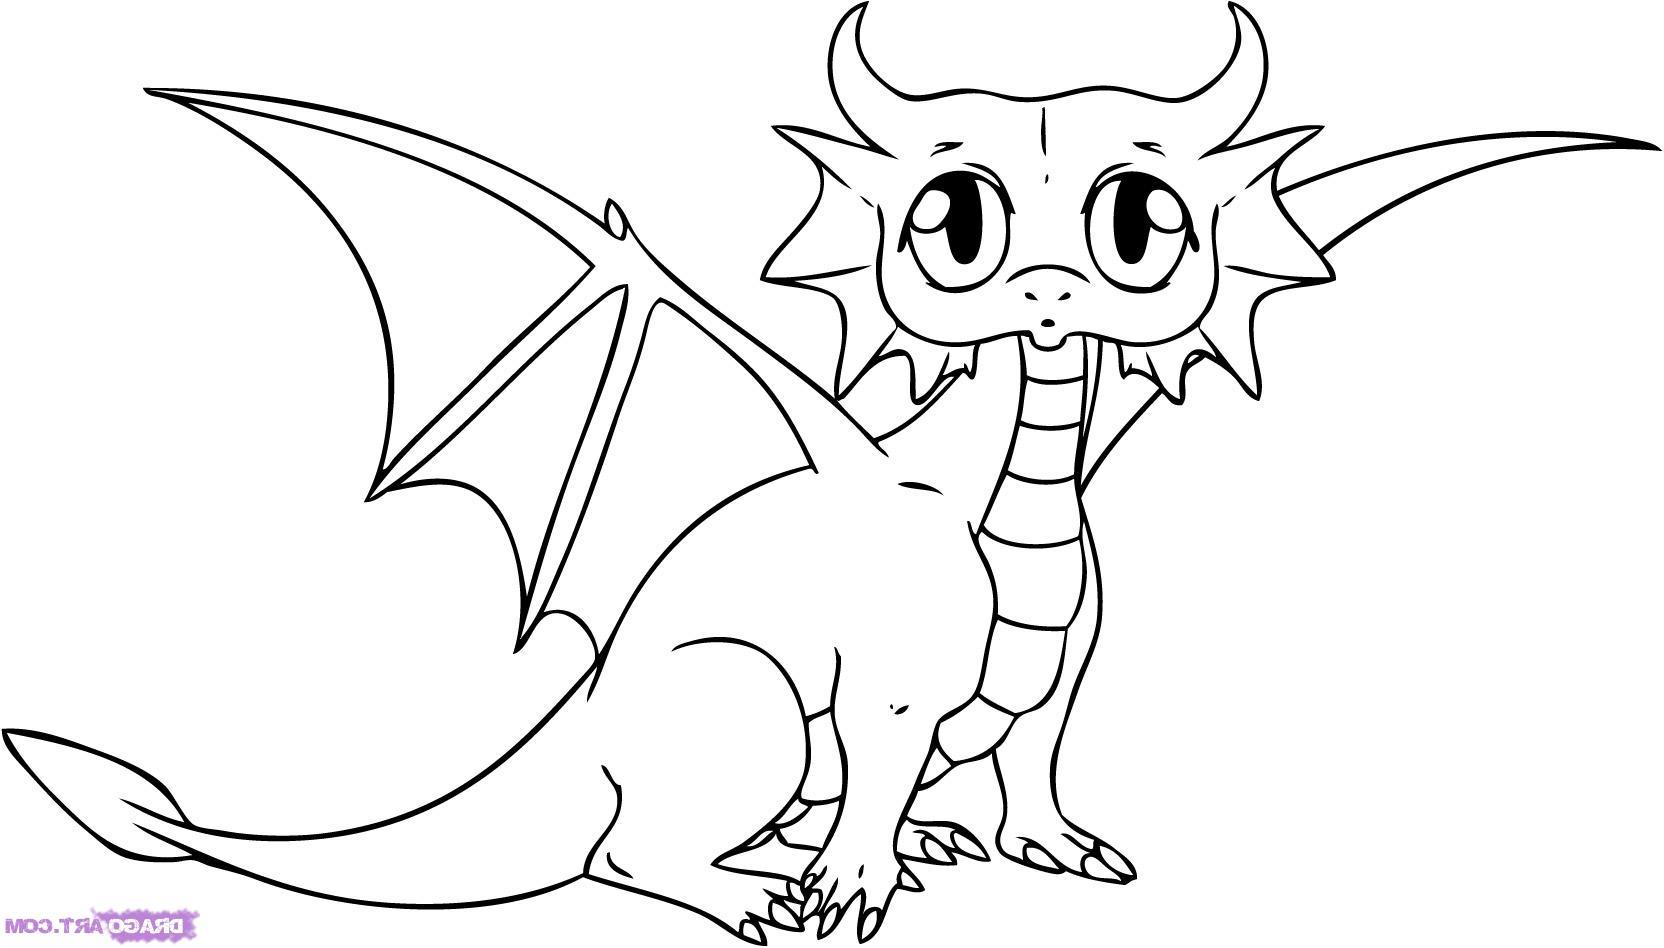 1664x948 Drawings Of Cartoon Dragons Best 15 How To Draw Cartoon Dragon